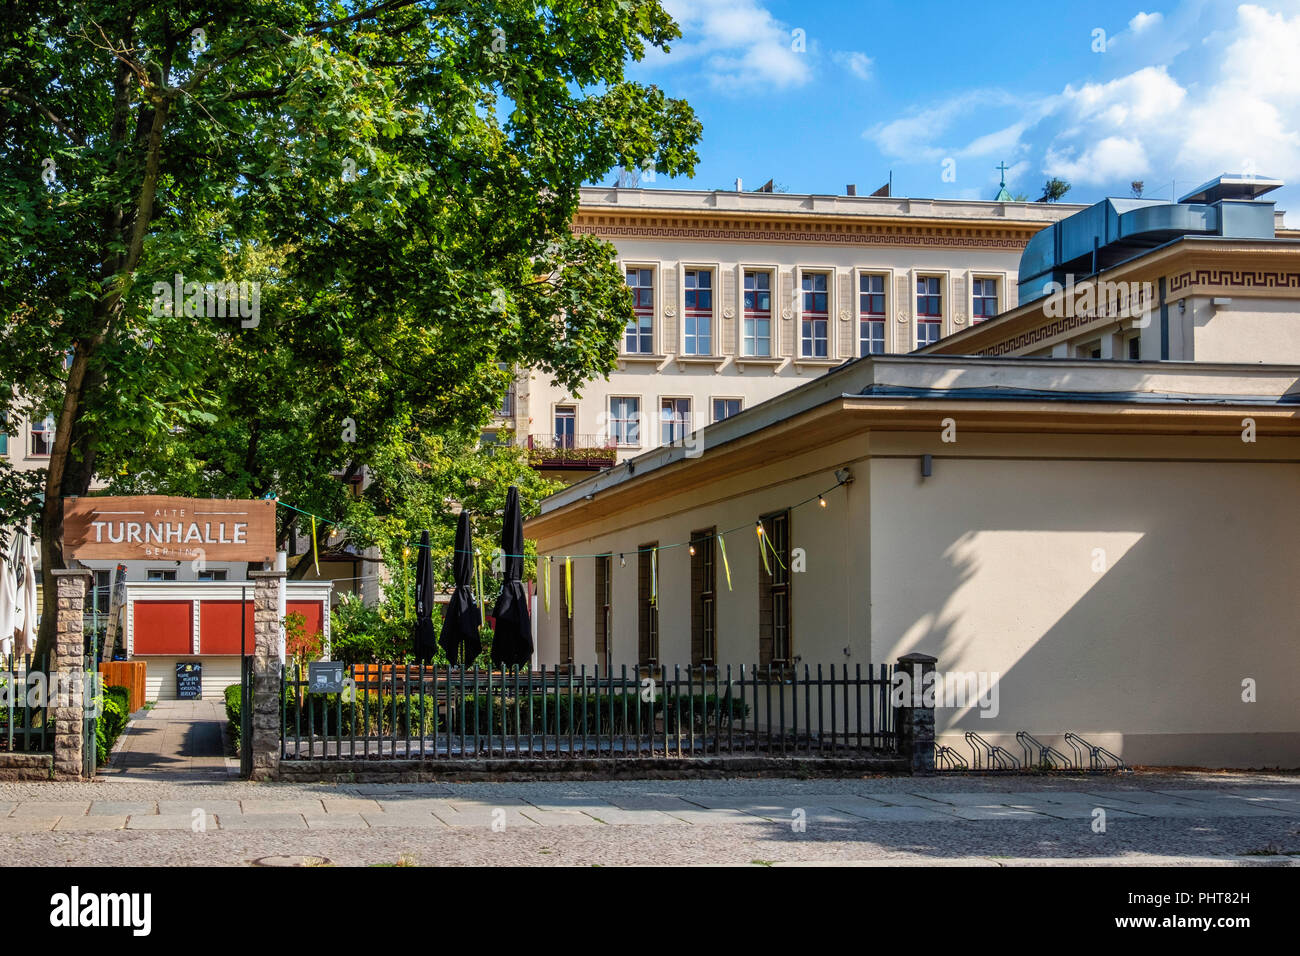 Berlin-Friedrichshain.Alte Turnhalle building exterior. Restaurant & lounge bar with large outside terrace. Listed old gymnasium,converted sports hall - Stock Image